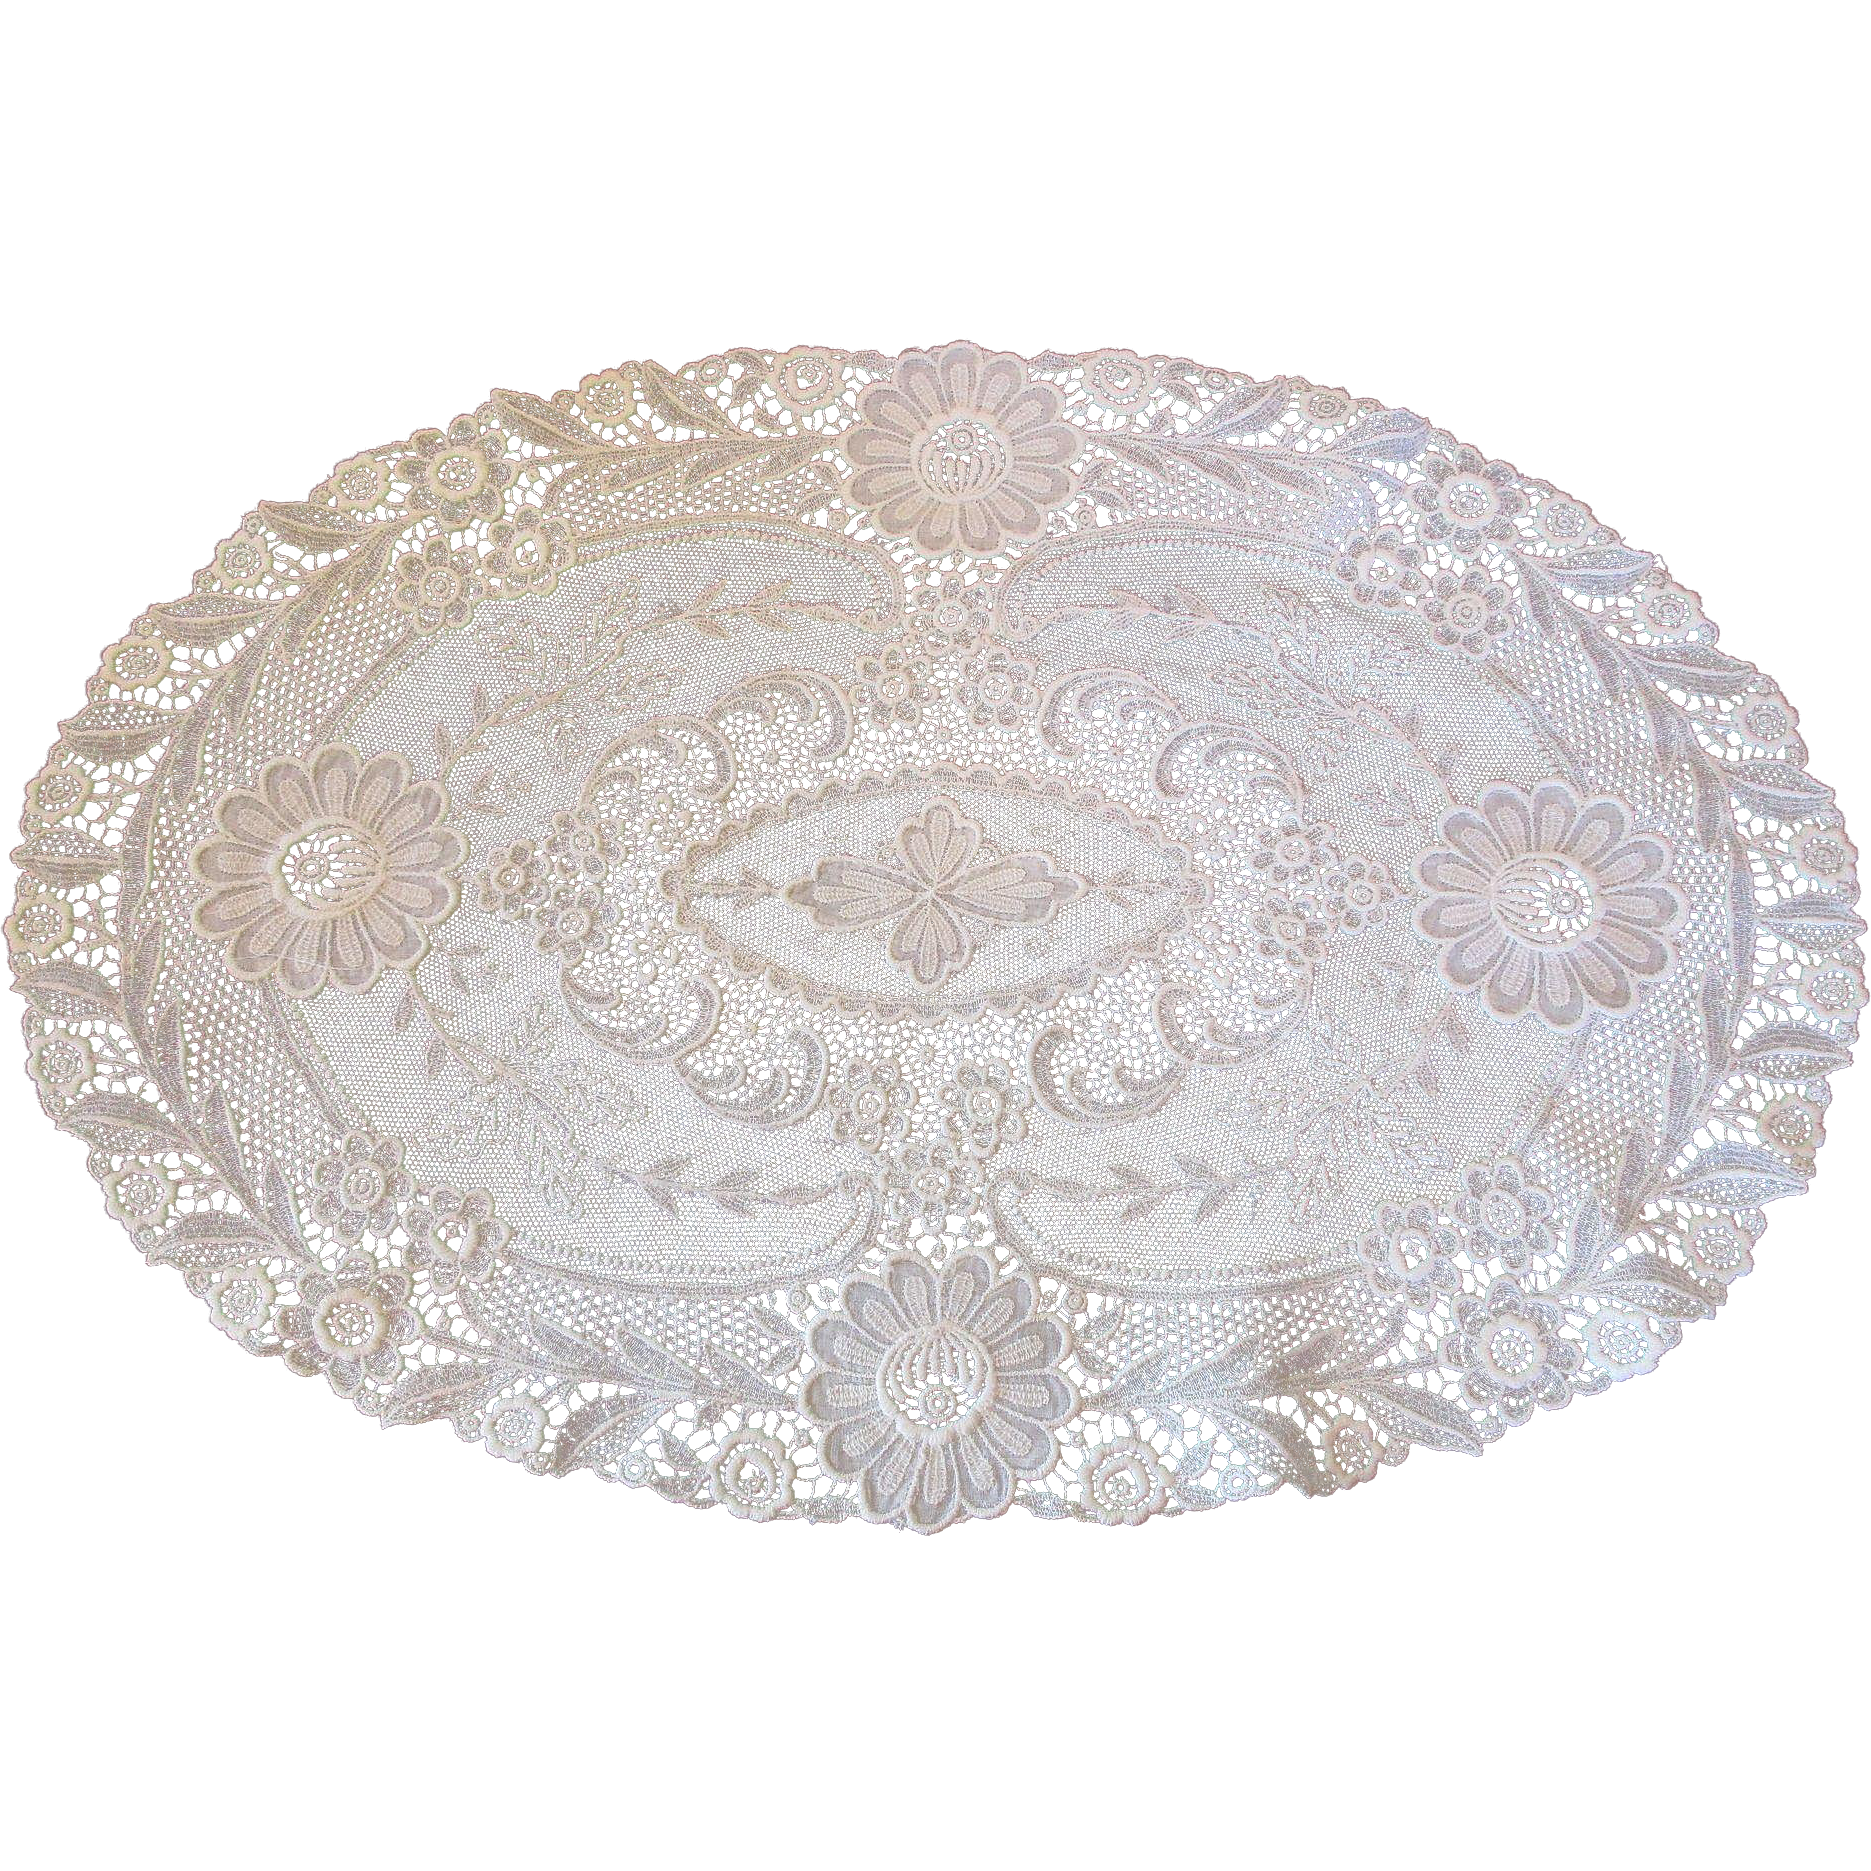 Doily transparent 10 inch. Large vintage oval lace